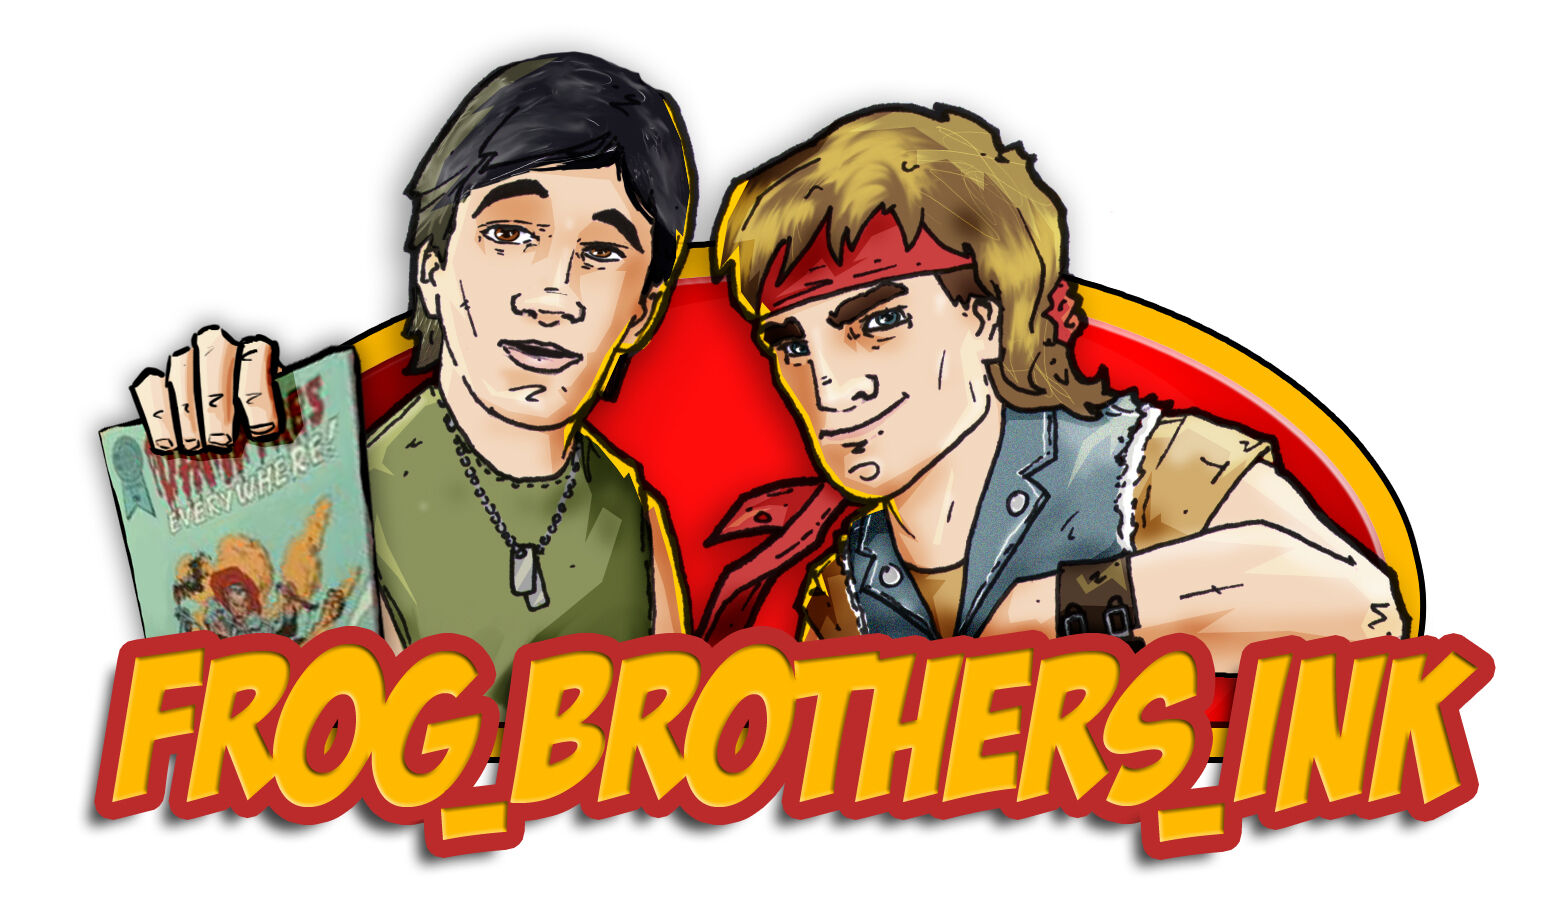 Frog_Brothers_Ink